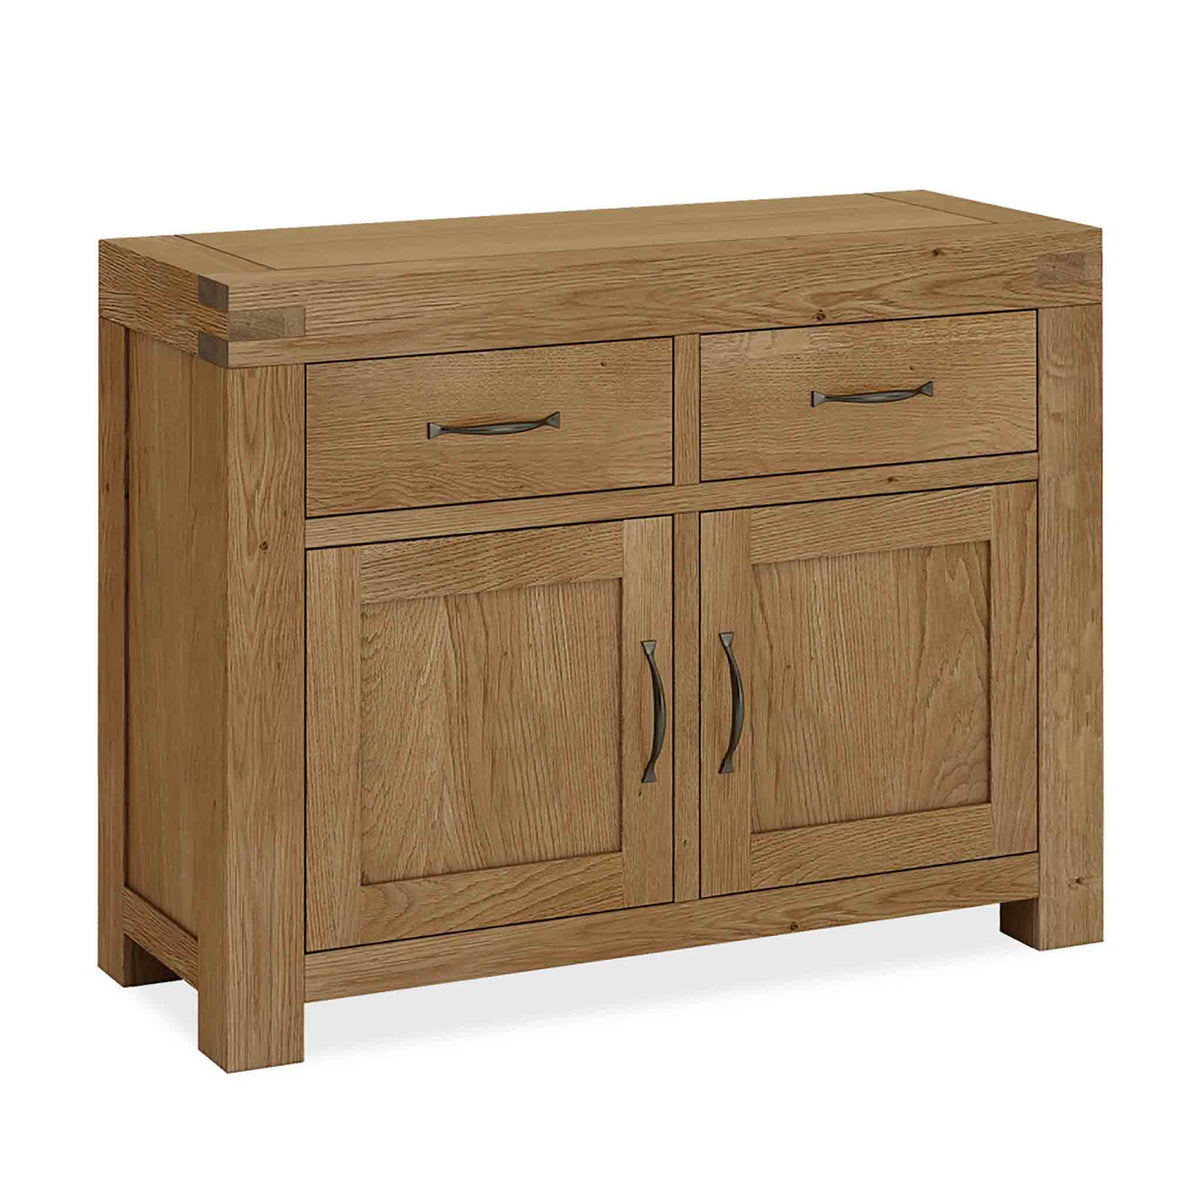 The Abbey Grande Oak Small Sideboard Cabinet with 2 Doors by Roseland Furniture